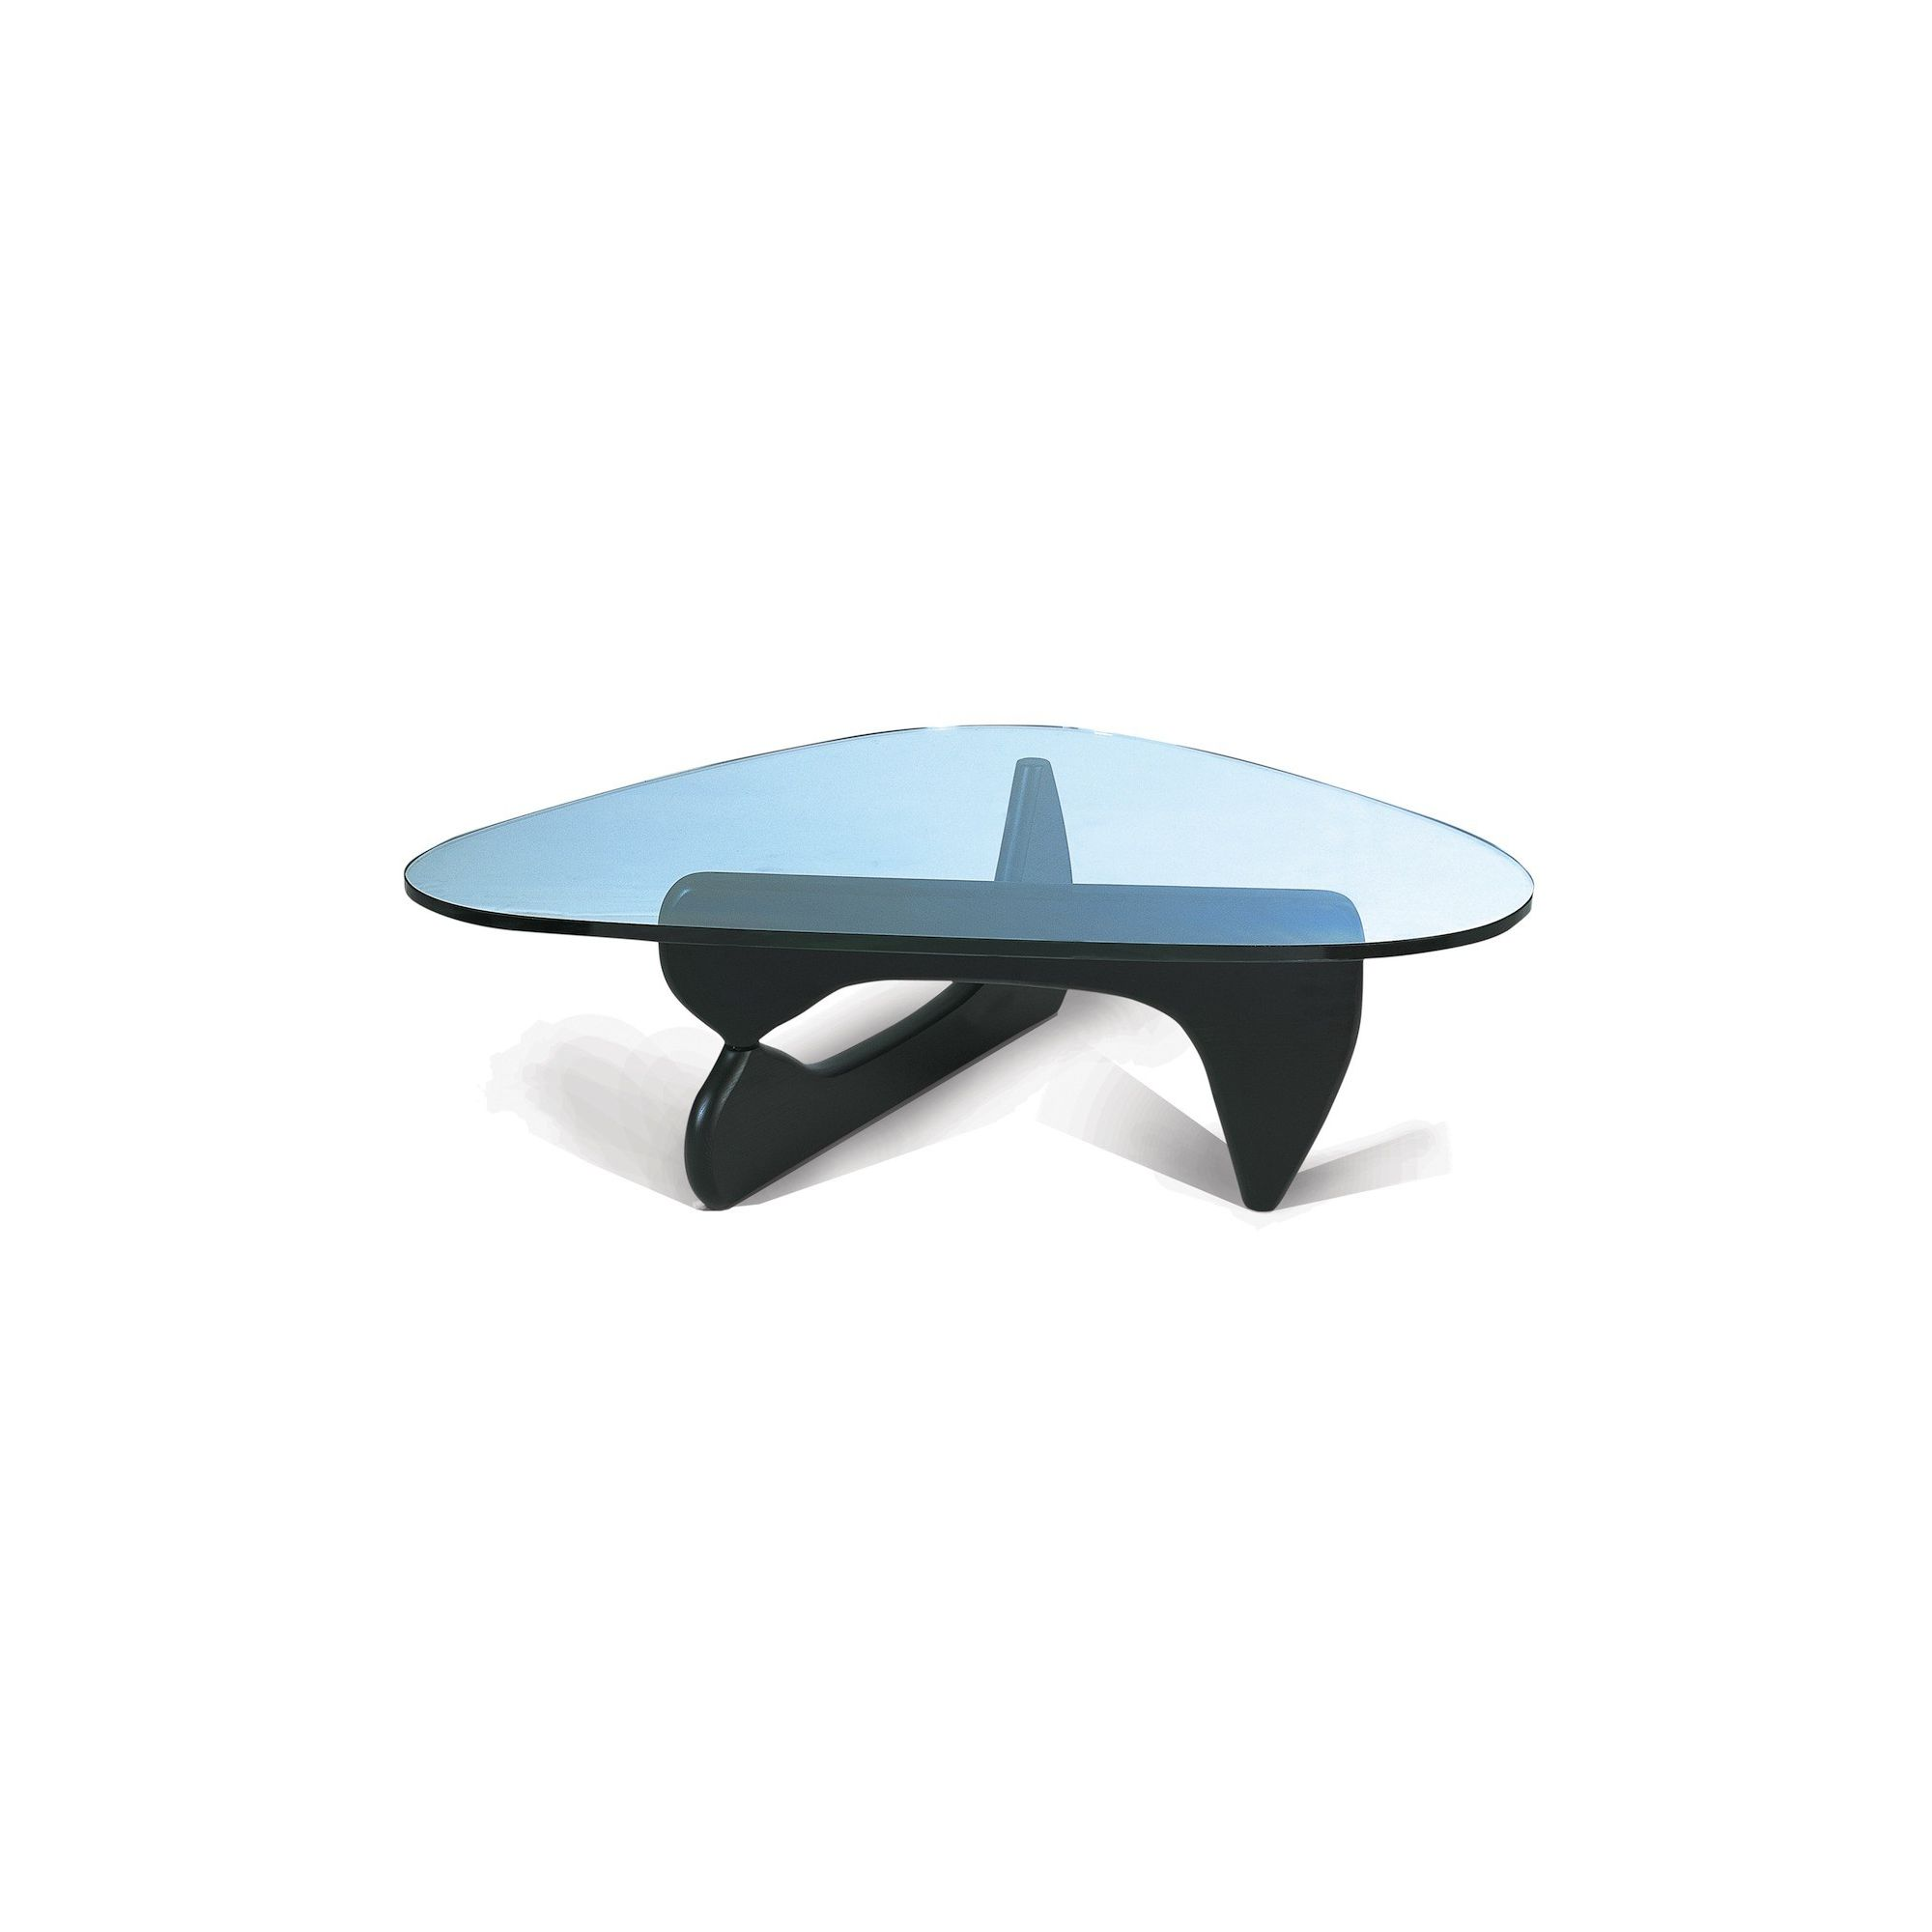 CC Furnishing Tempered Glass Coffee Table - Black at Tesco Direct